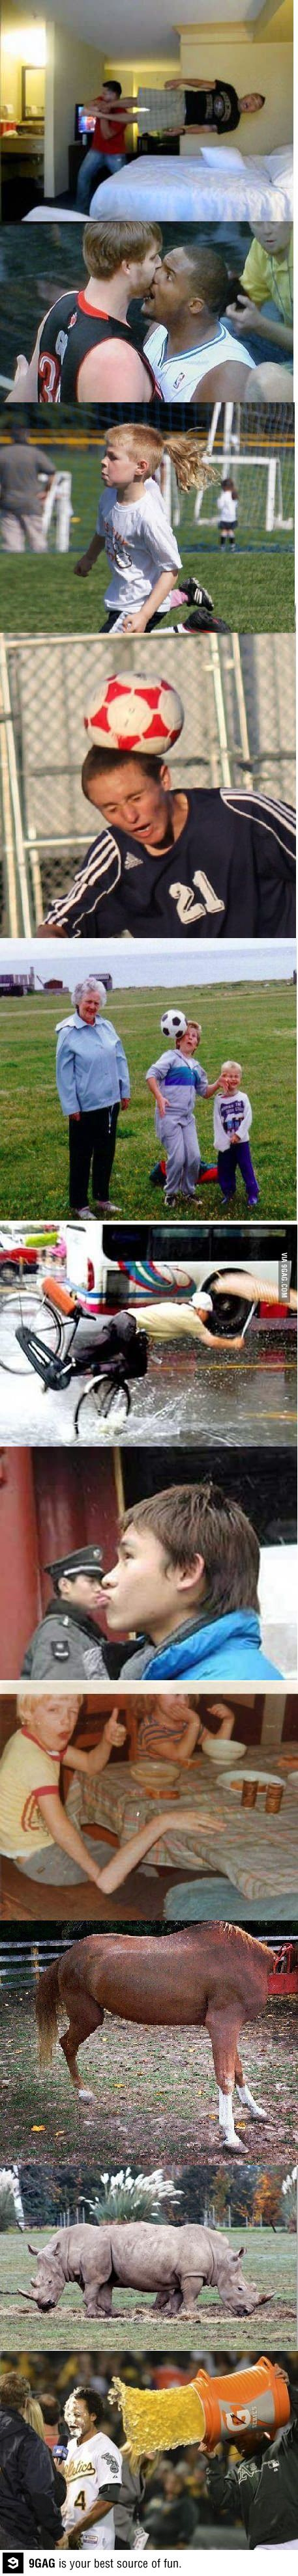 Some Perfectly Timed Photos